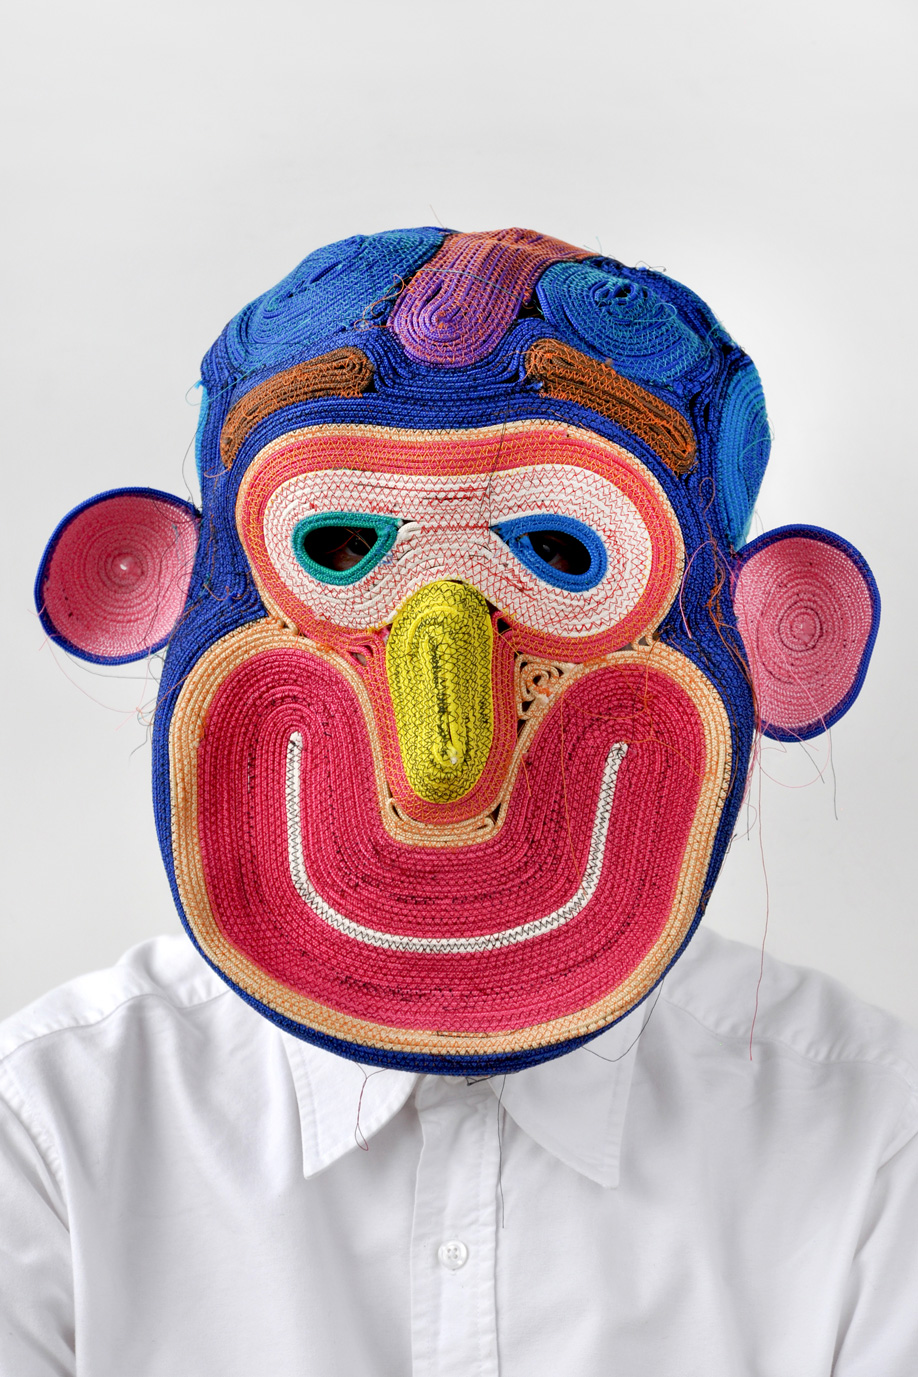 Designer Bertjan Pot with a colourful rope-woven mask